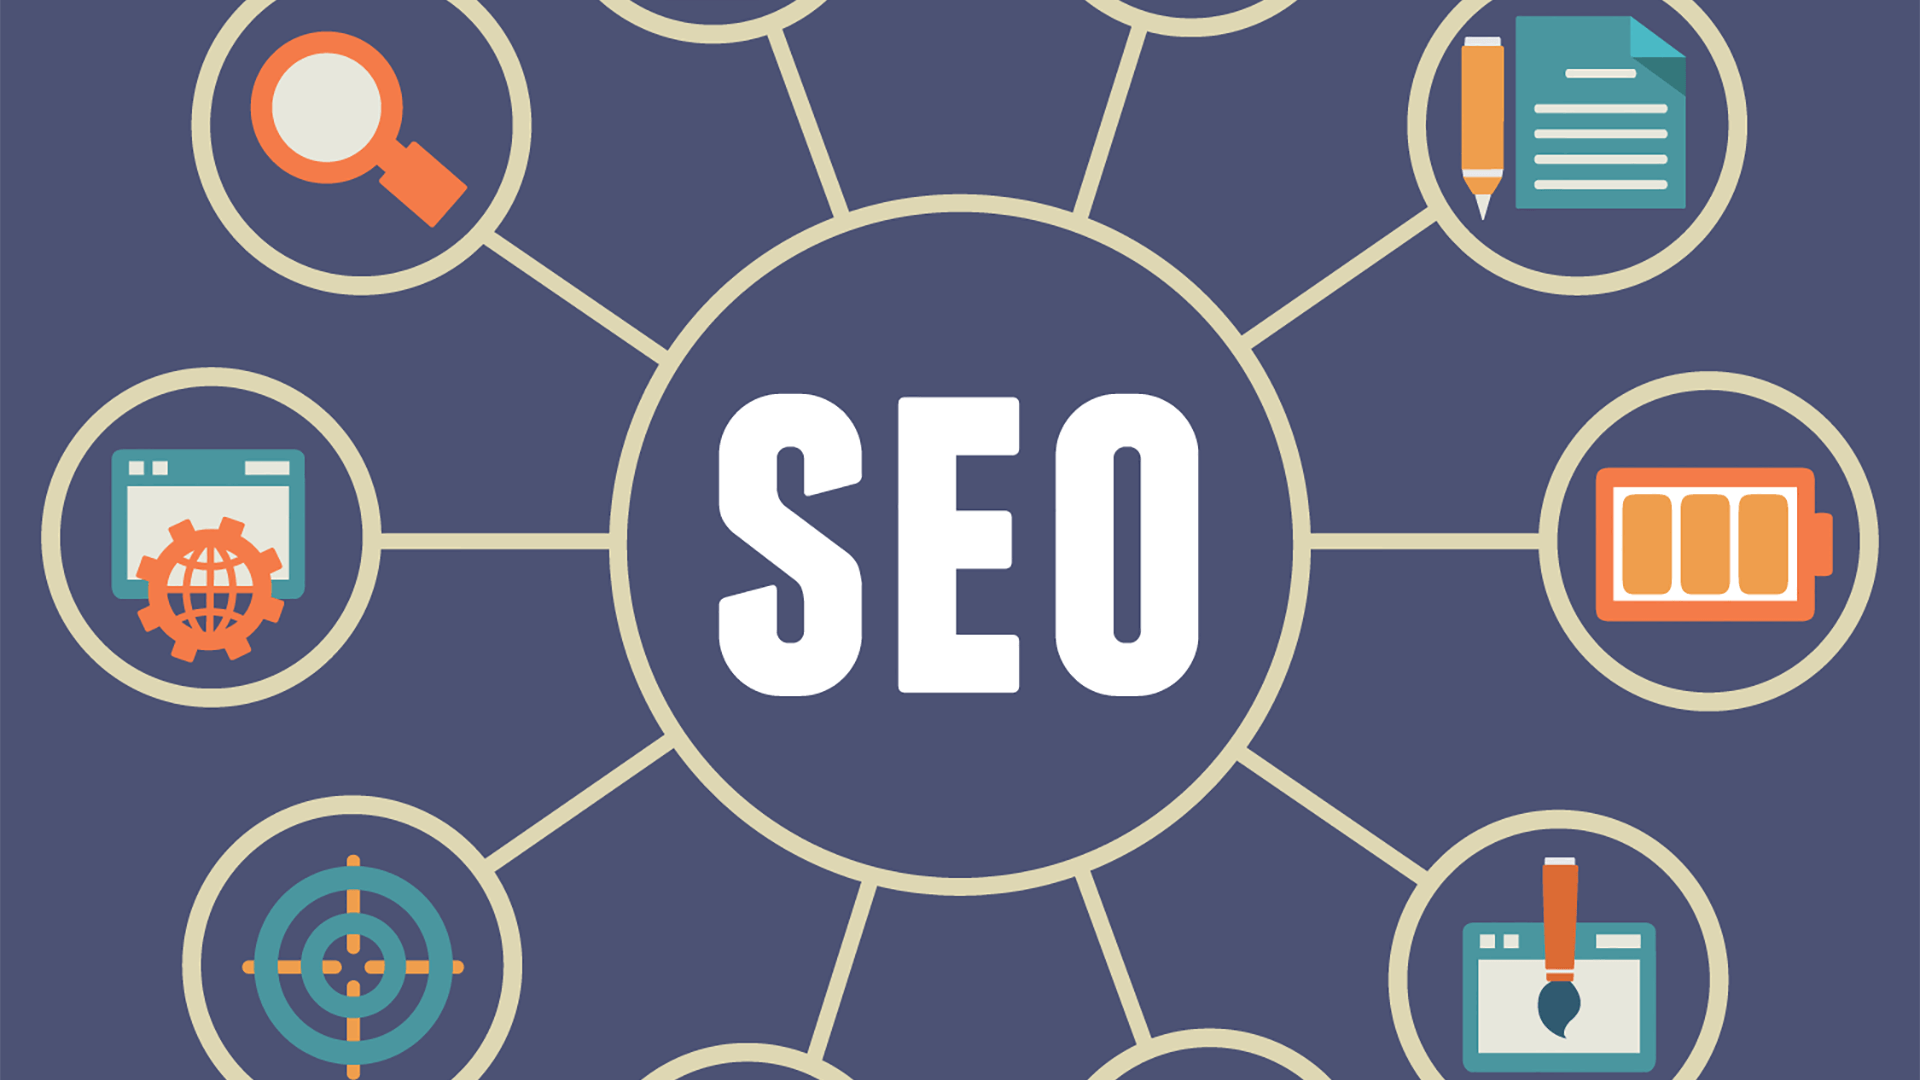 I provide ultimate seo service for high ranking in google